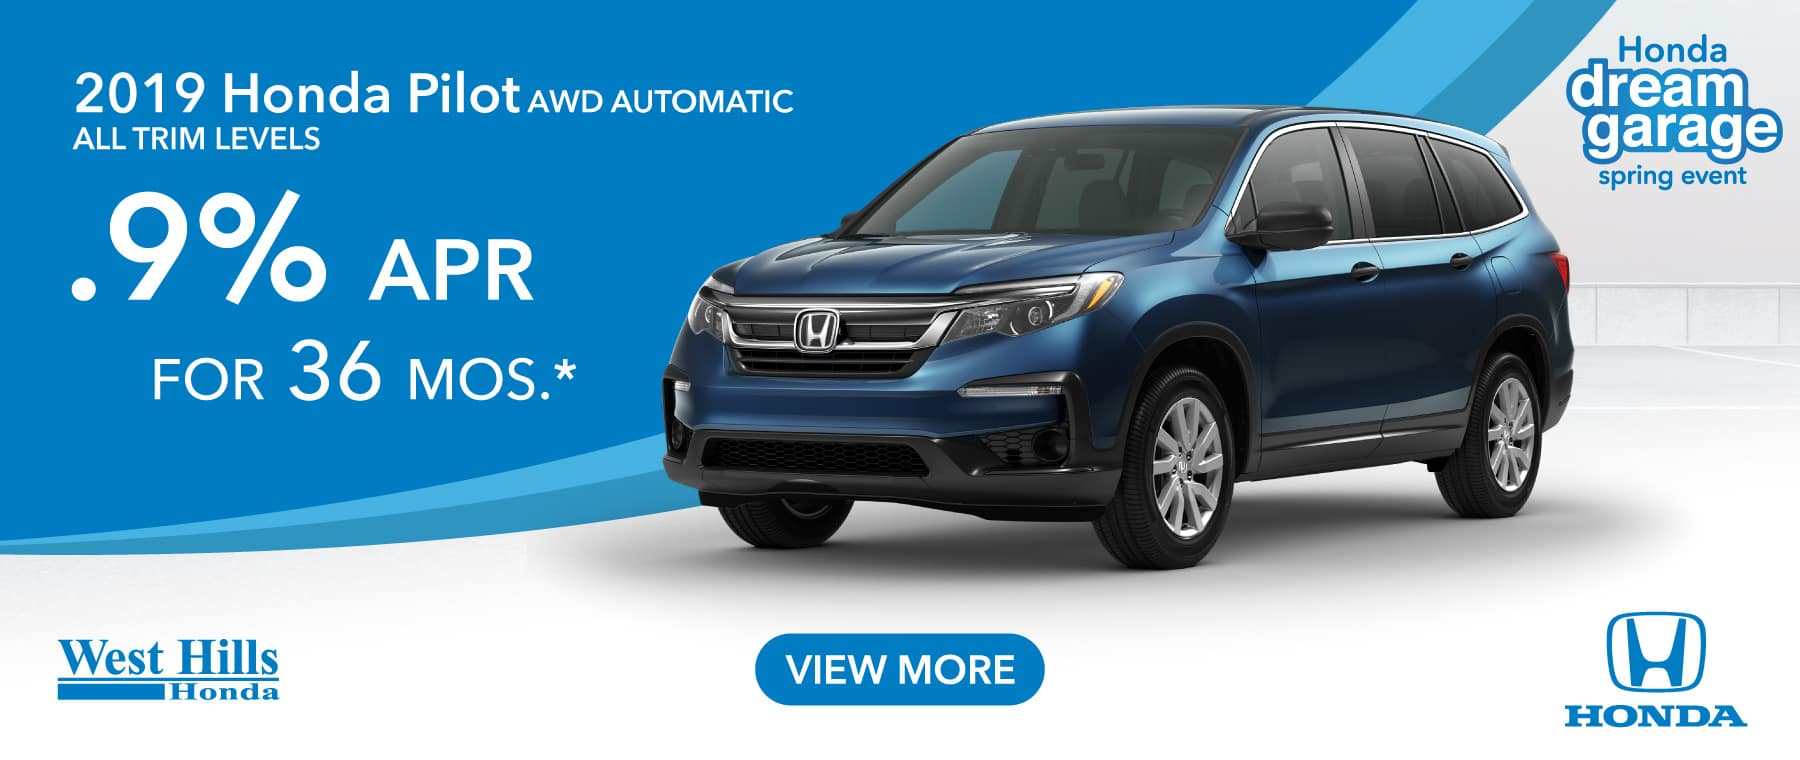 2019 Honda Pilot AWD Automatic All Trims (Featured Vehicle)  .9% for 36 mos. *